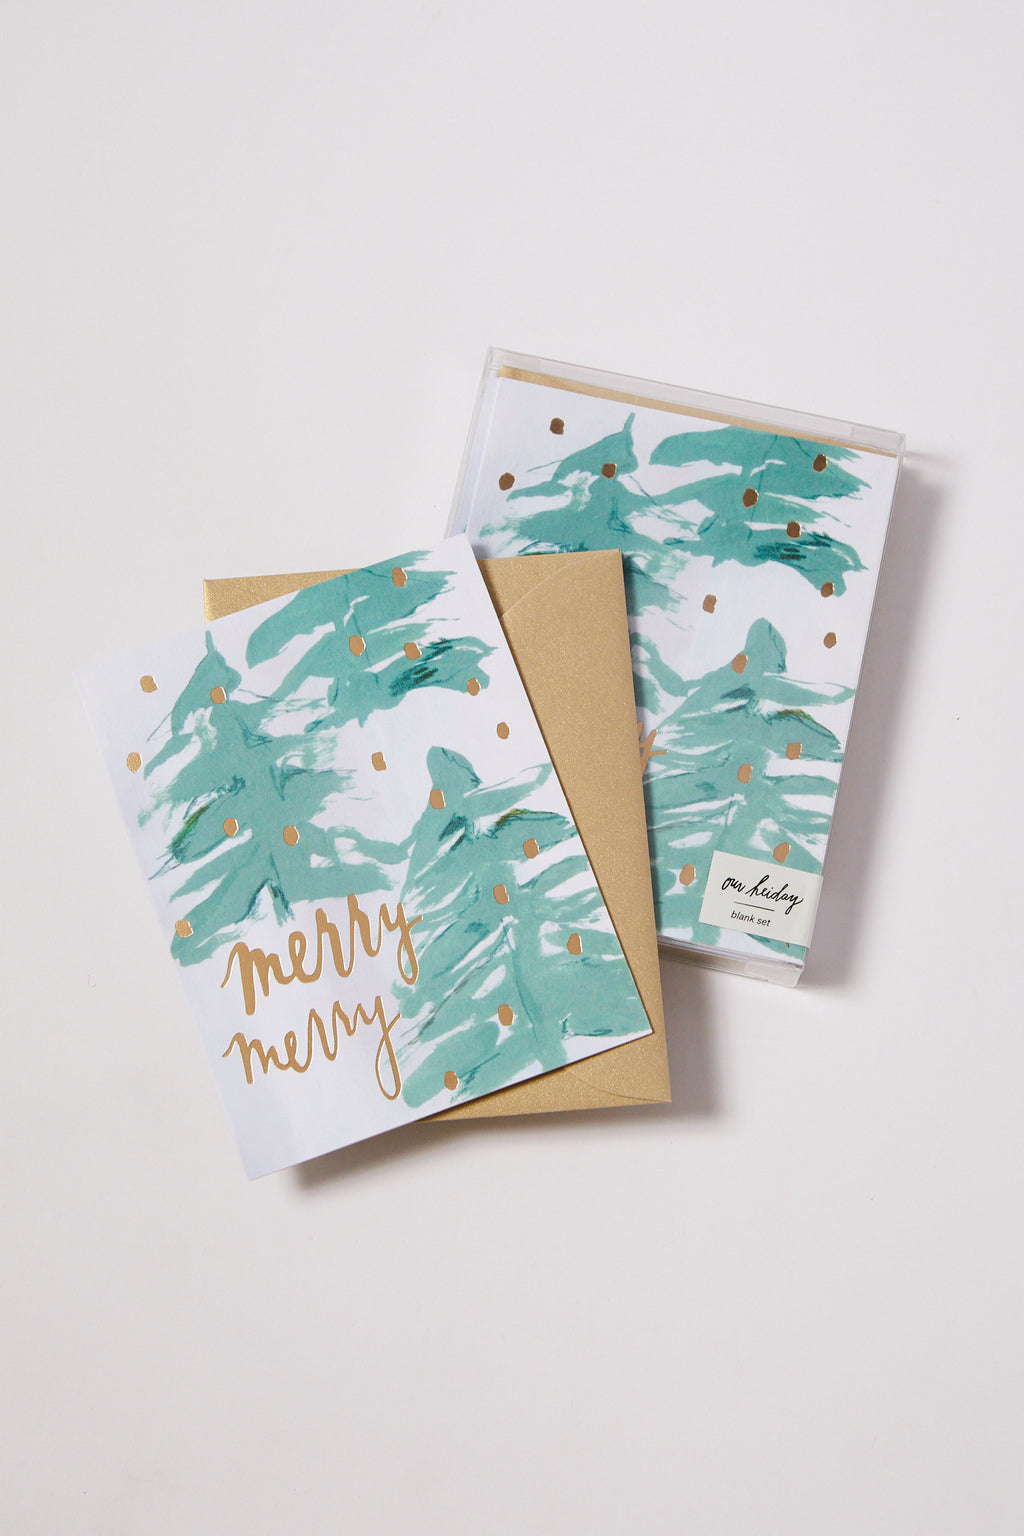 Merry Merry Season's Greeting Card Set